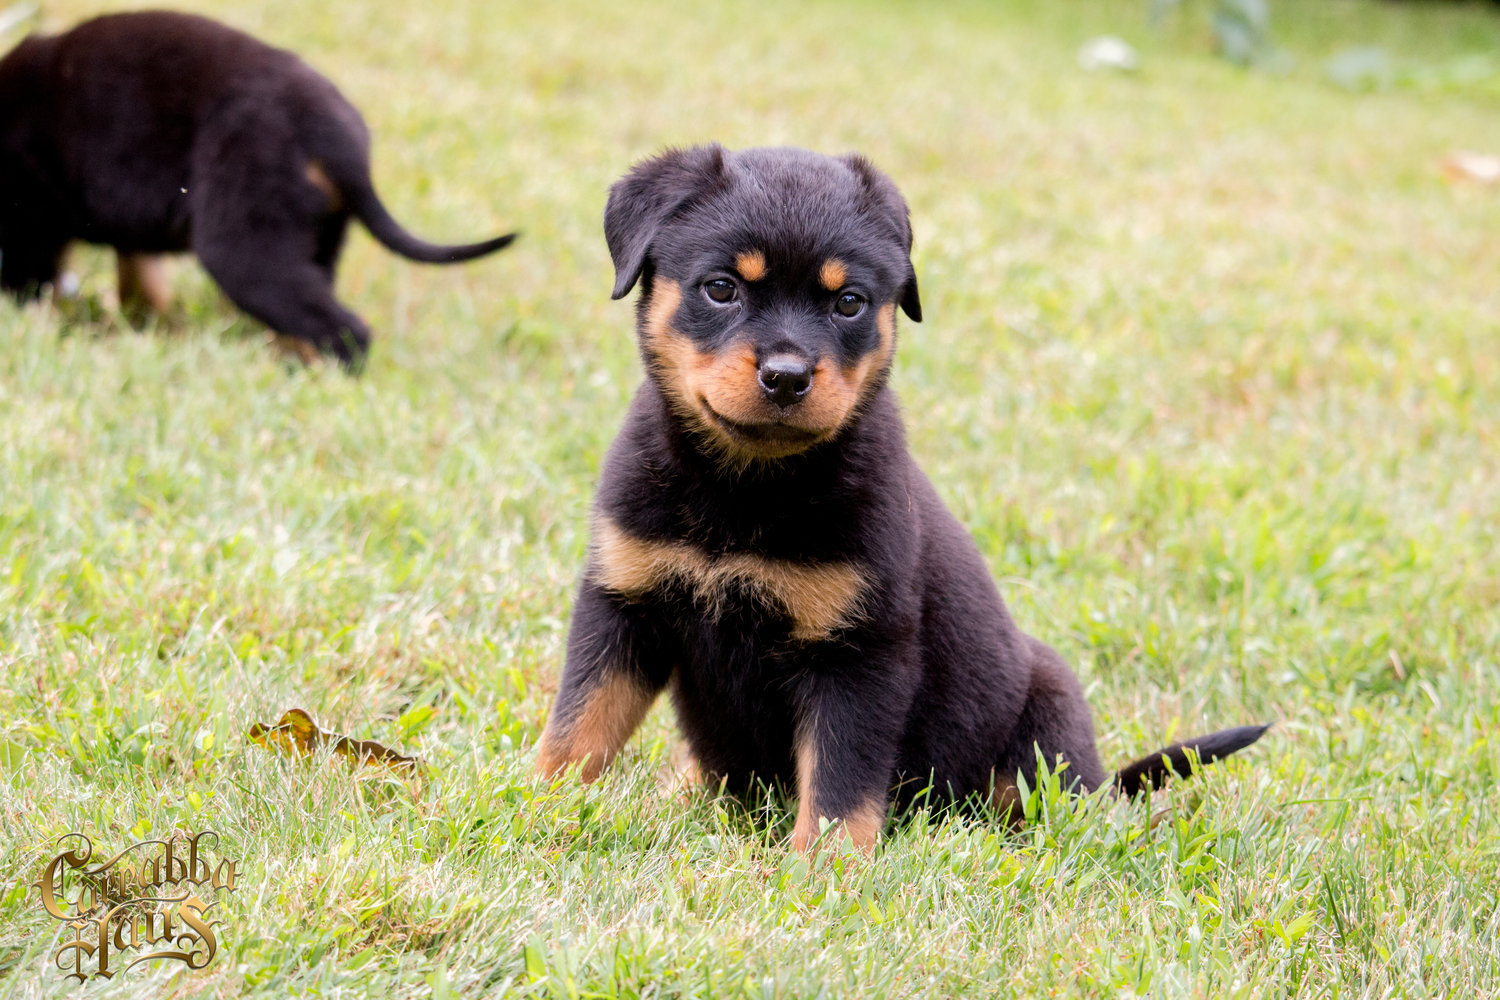 Rottweiler Puppies For Sale Carrabba Haus Rottweilers German